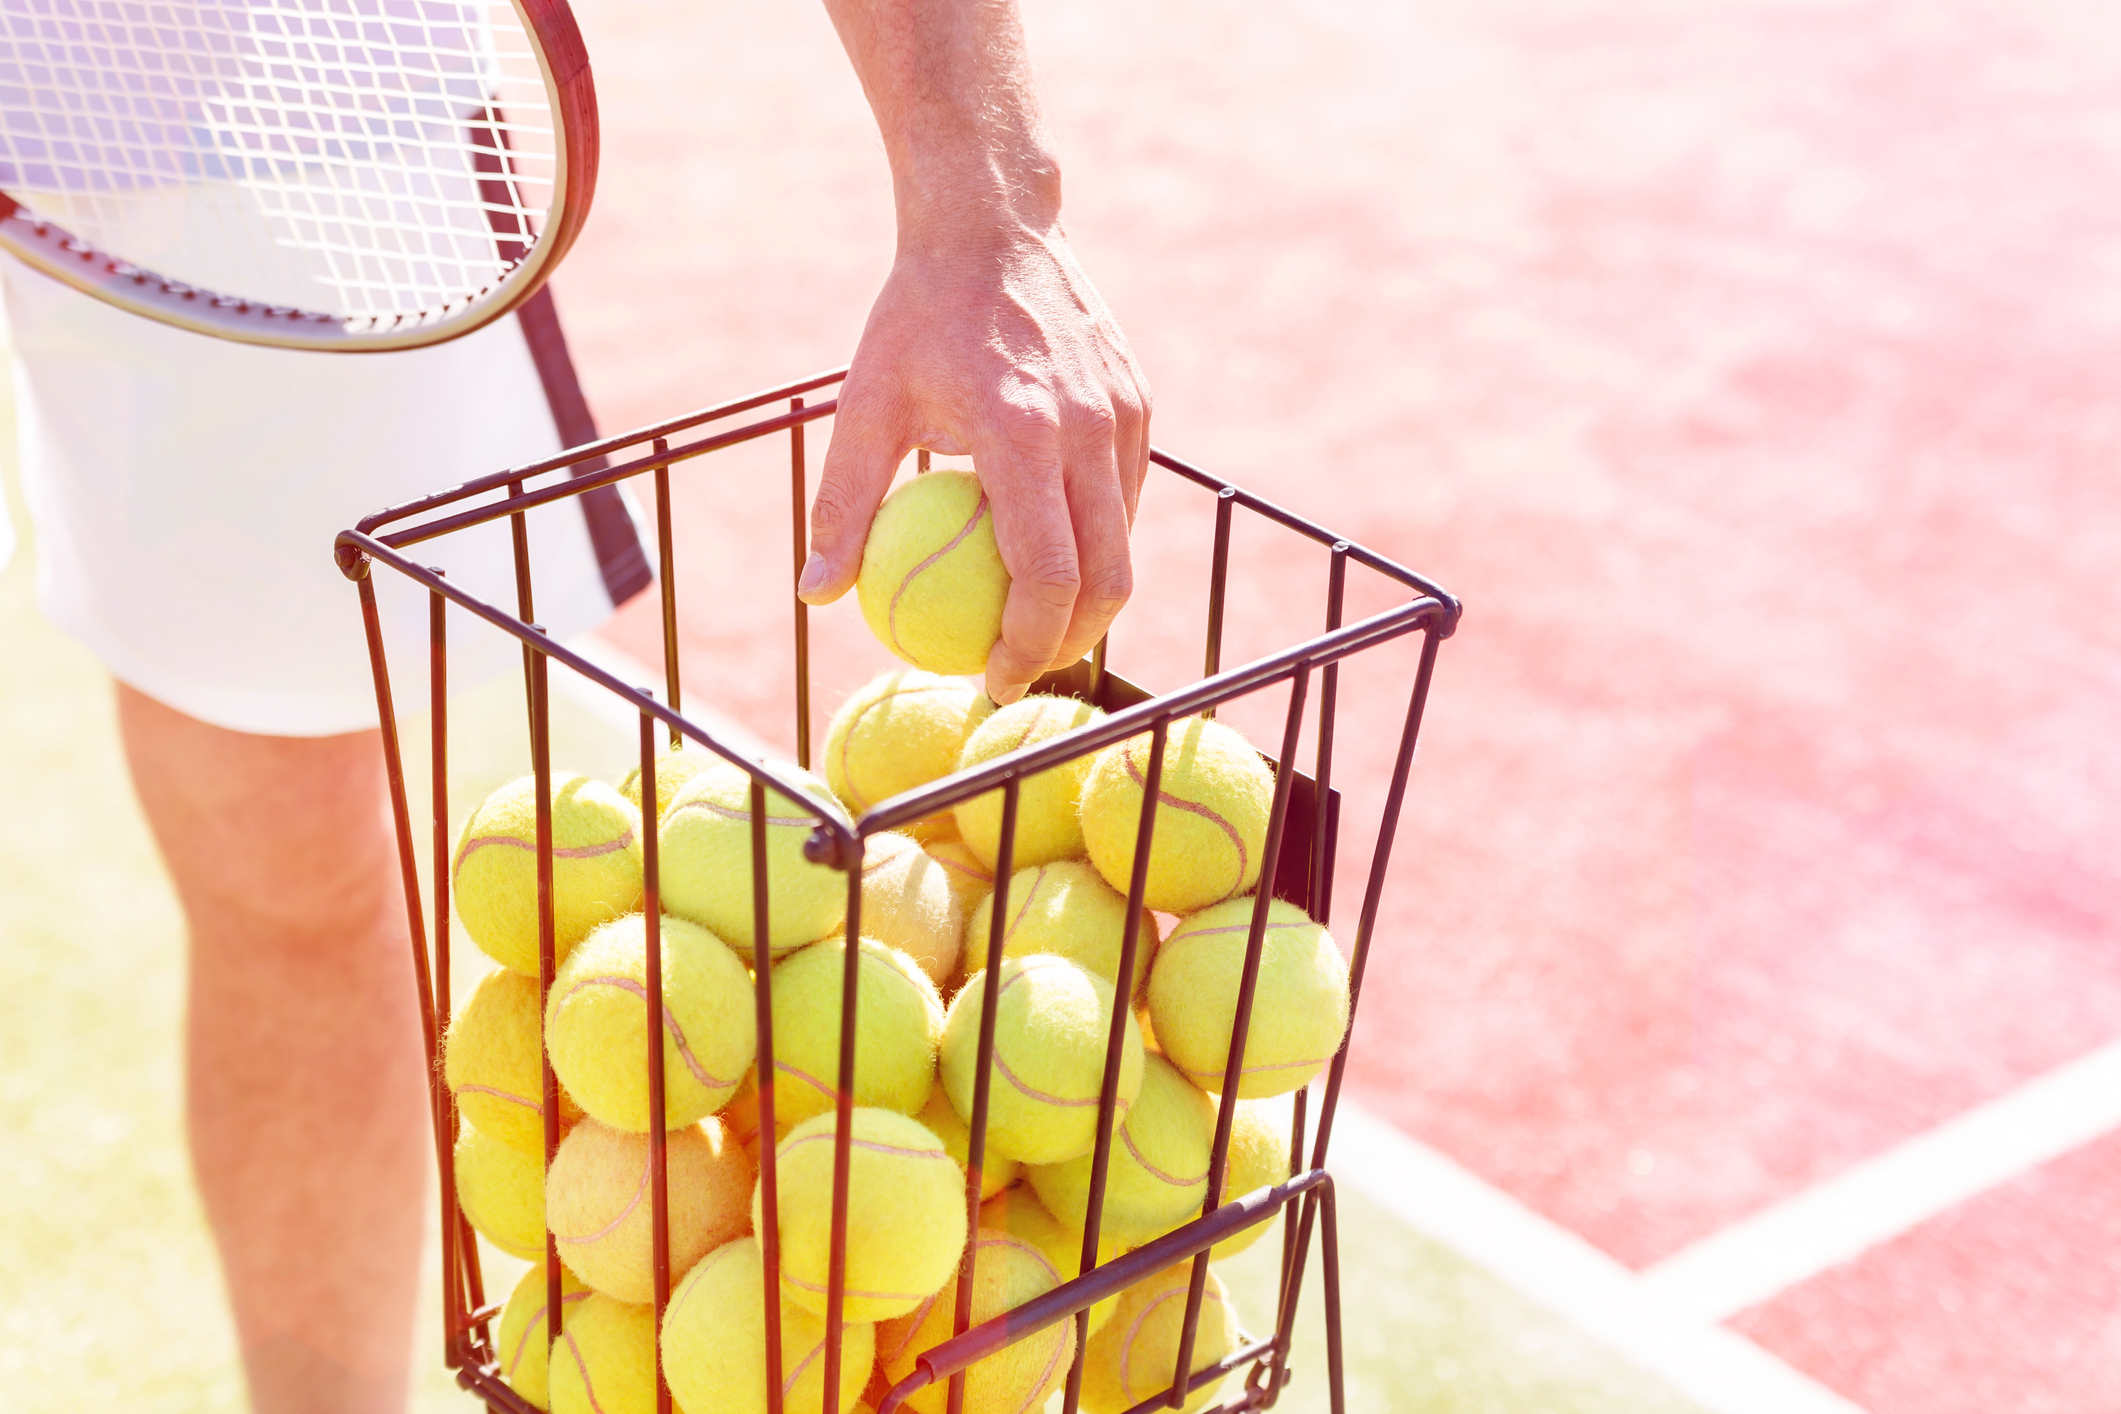 The Best Tennis Ball Hoppers for Your Court